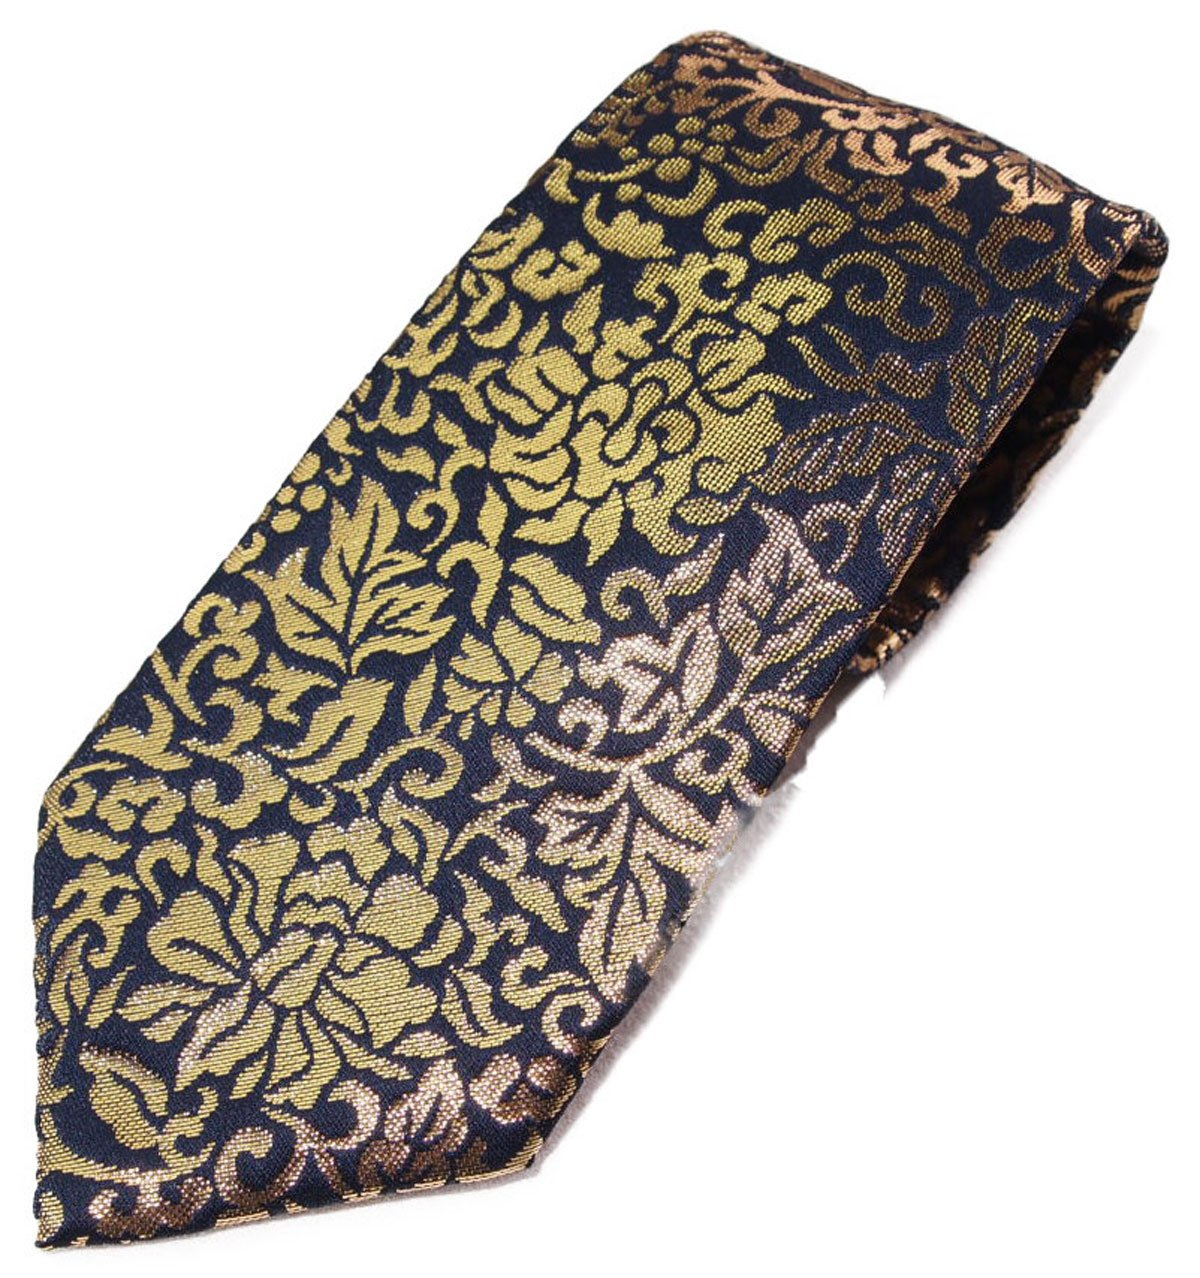 "Real Gold (Blue) Four Seasons Handmade Men's Japanese Kimono Pattern Luxury Brocade Necktie (3.3"" x 56"") by Four Seasons"